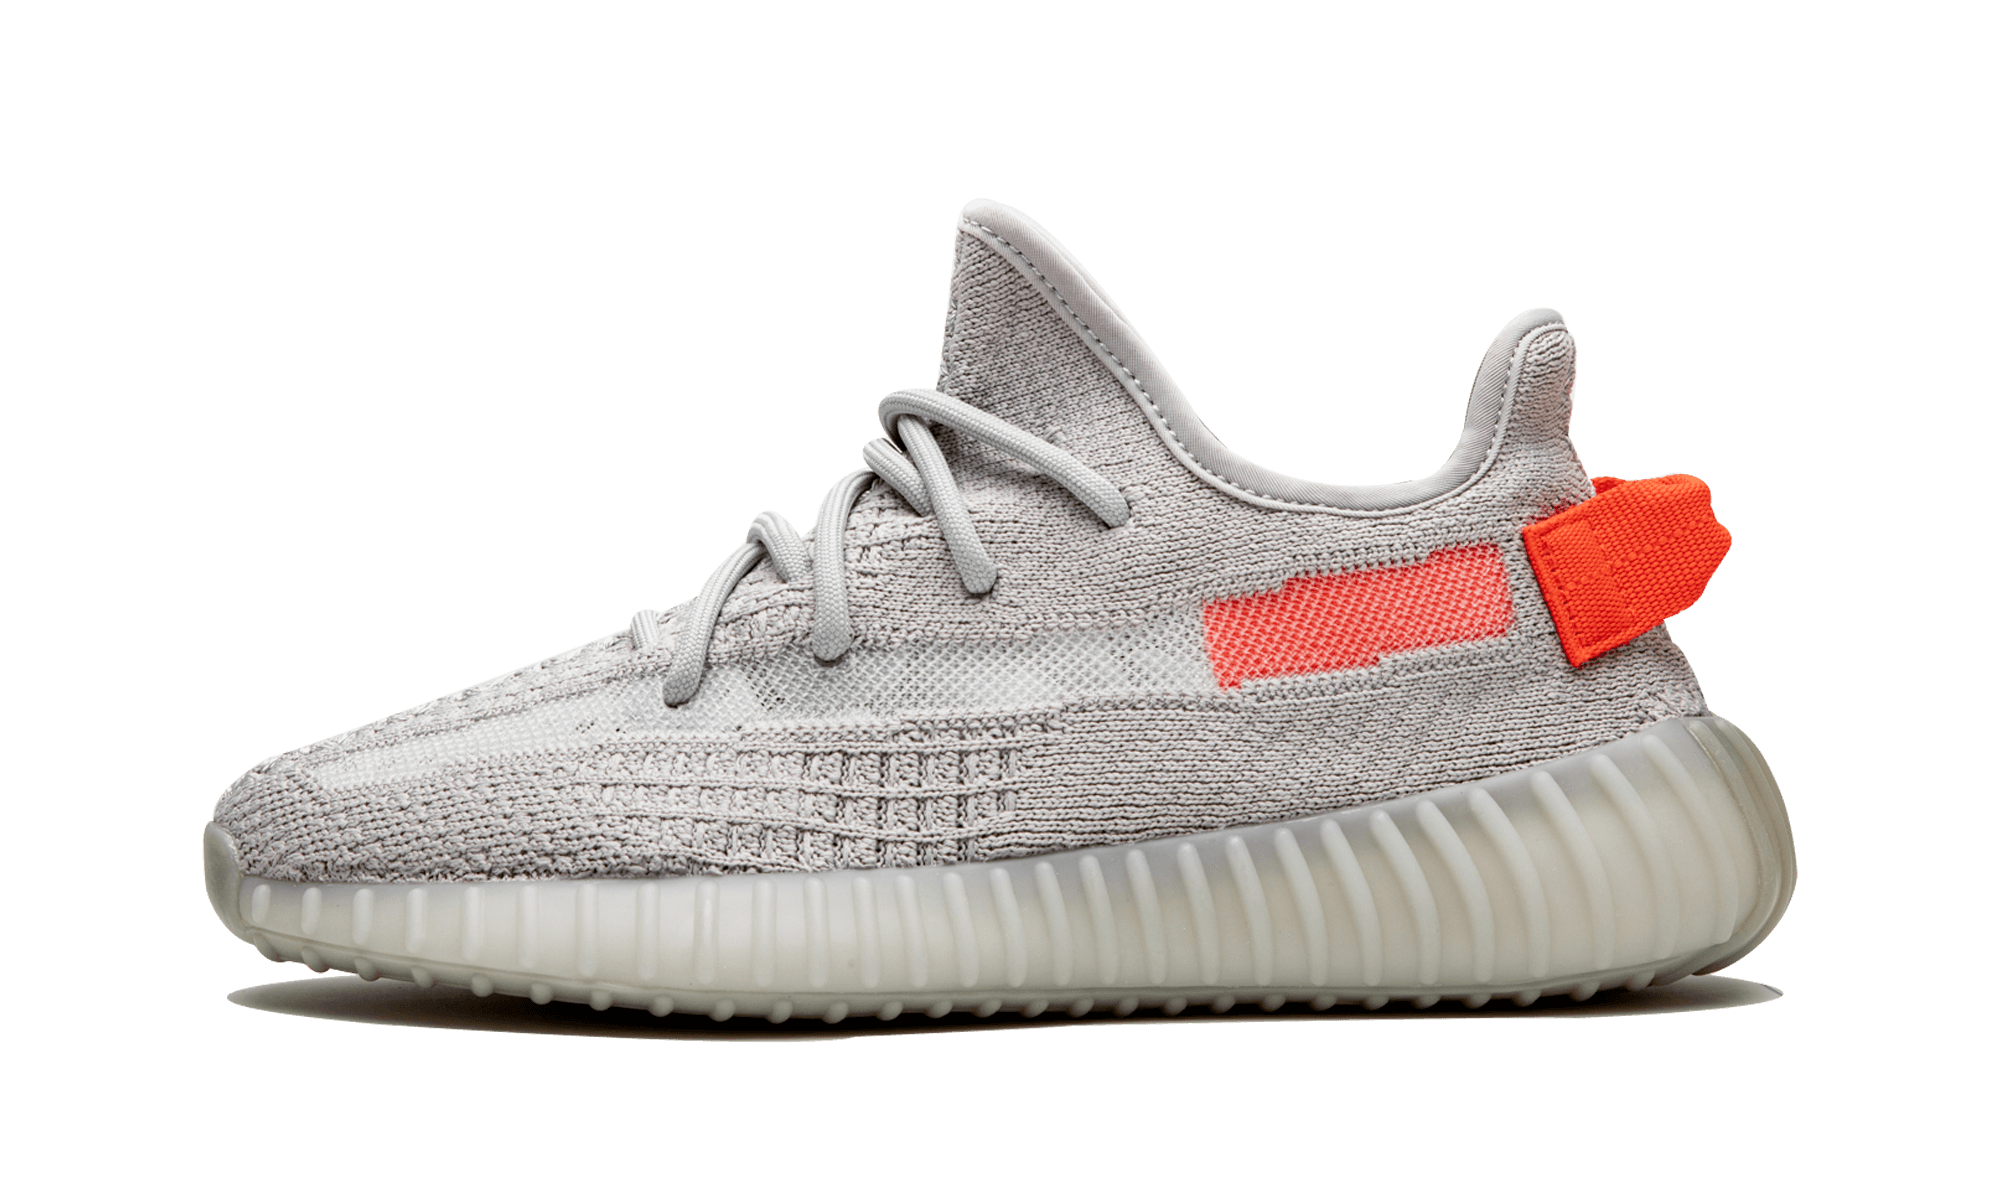 Buy New Adidas Yeezy Boost 350 V2 Tail Light sneakers